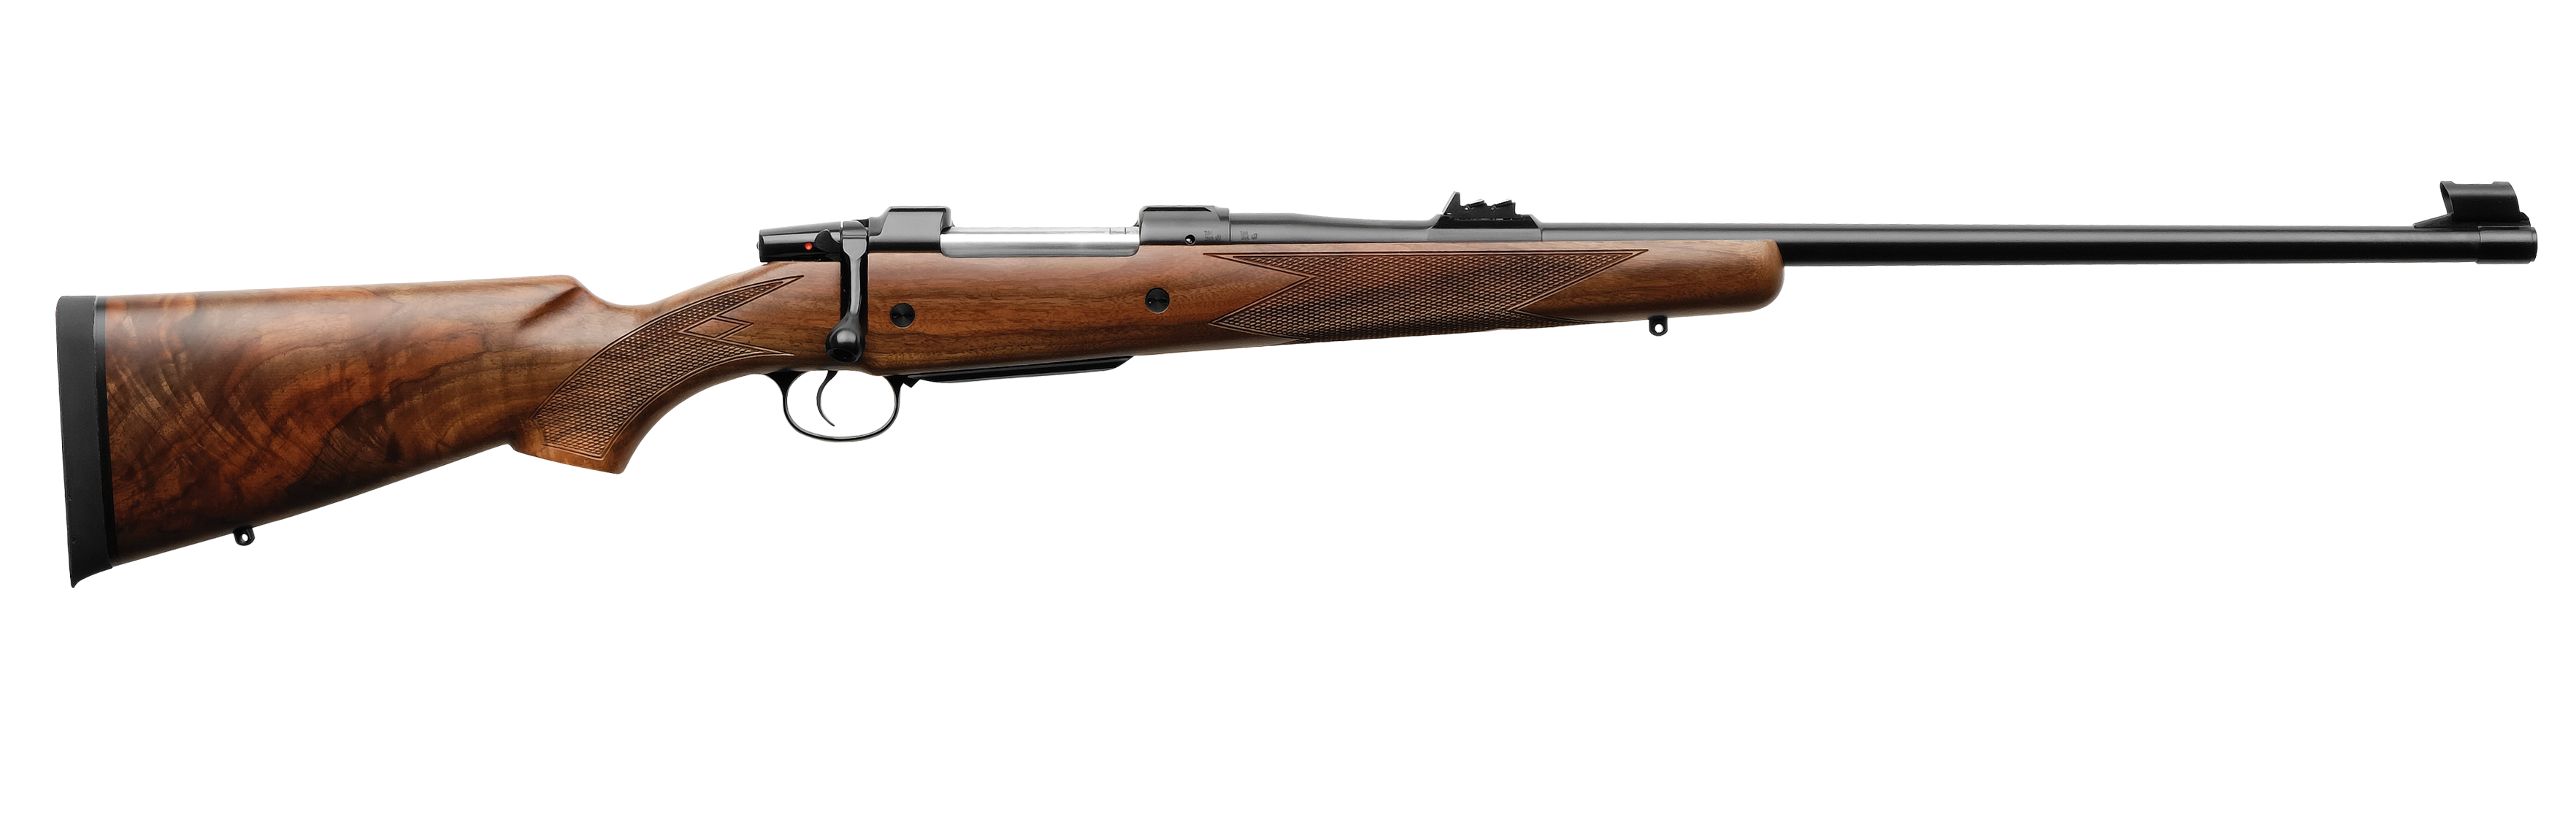 The affordable CZ 550 Safari Magnum from CZ USA. (Picture courtesy of czusa.com)